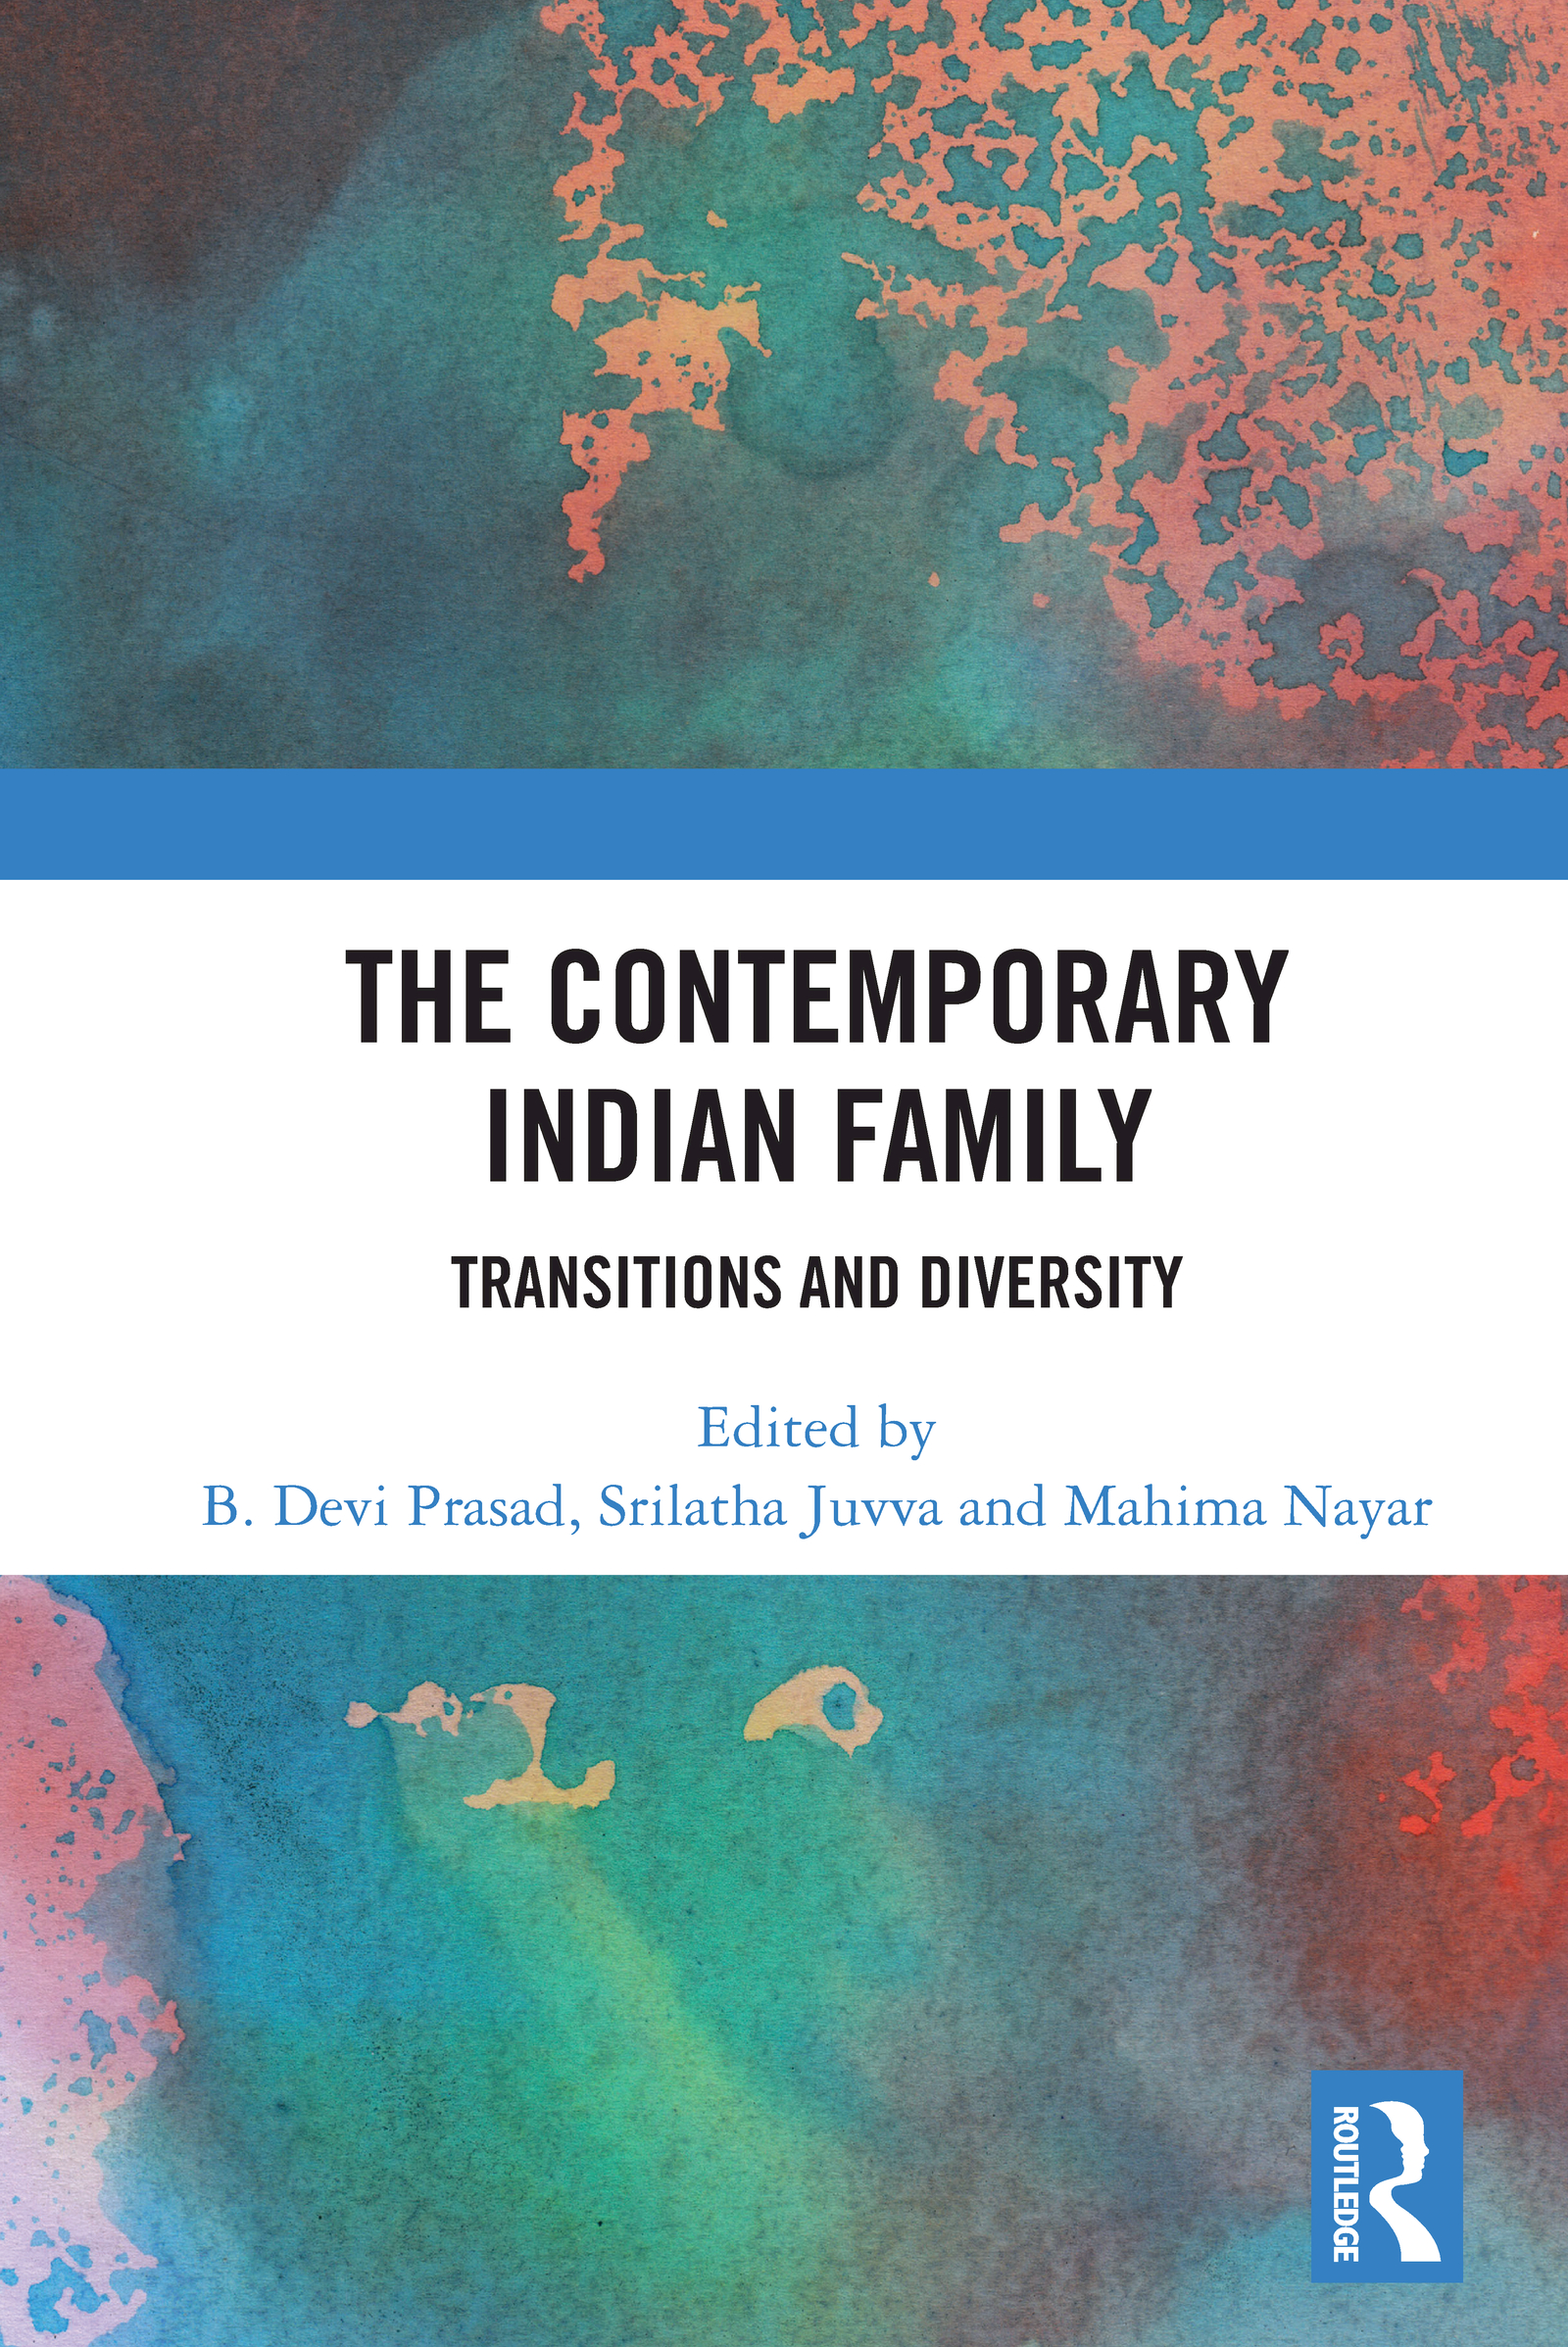 The Contemporary Indian Family